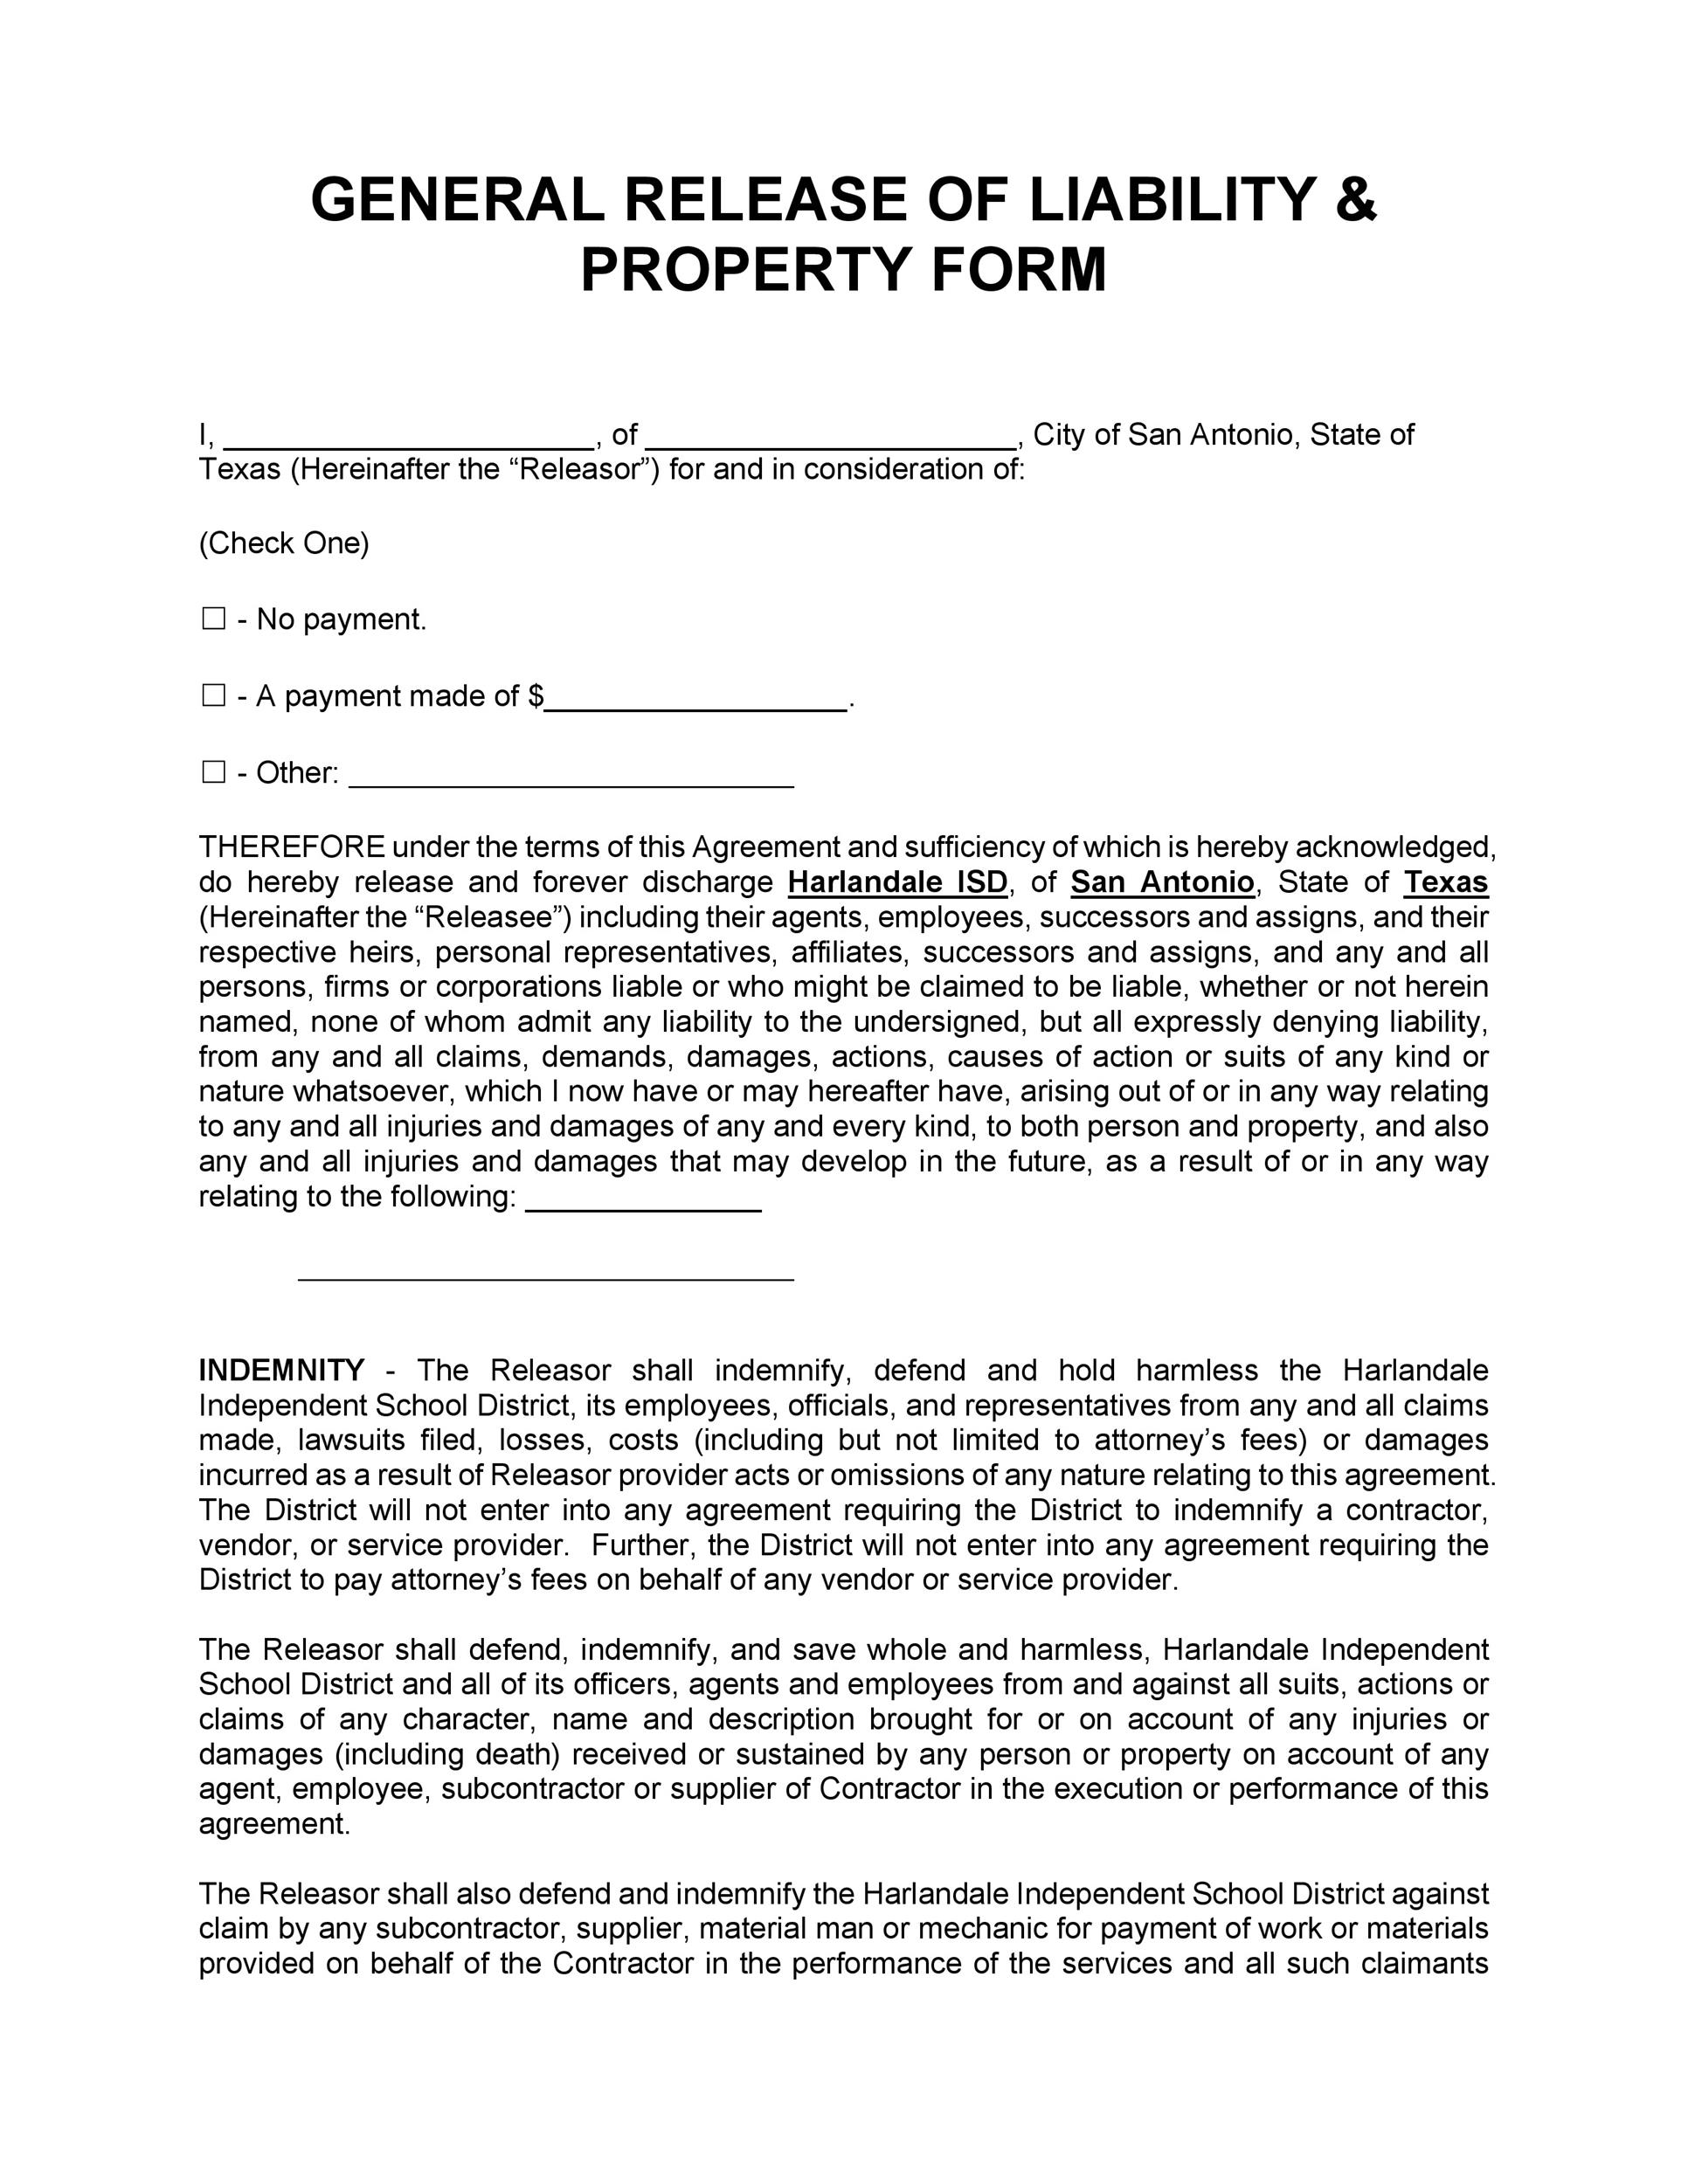 50 Free Release Of Liability Forms Liability Waiver ᐅ